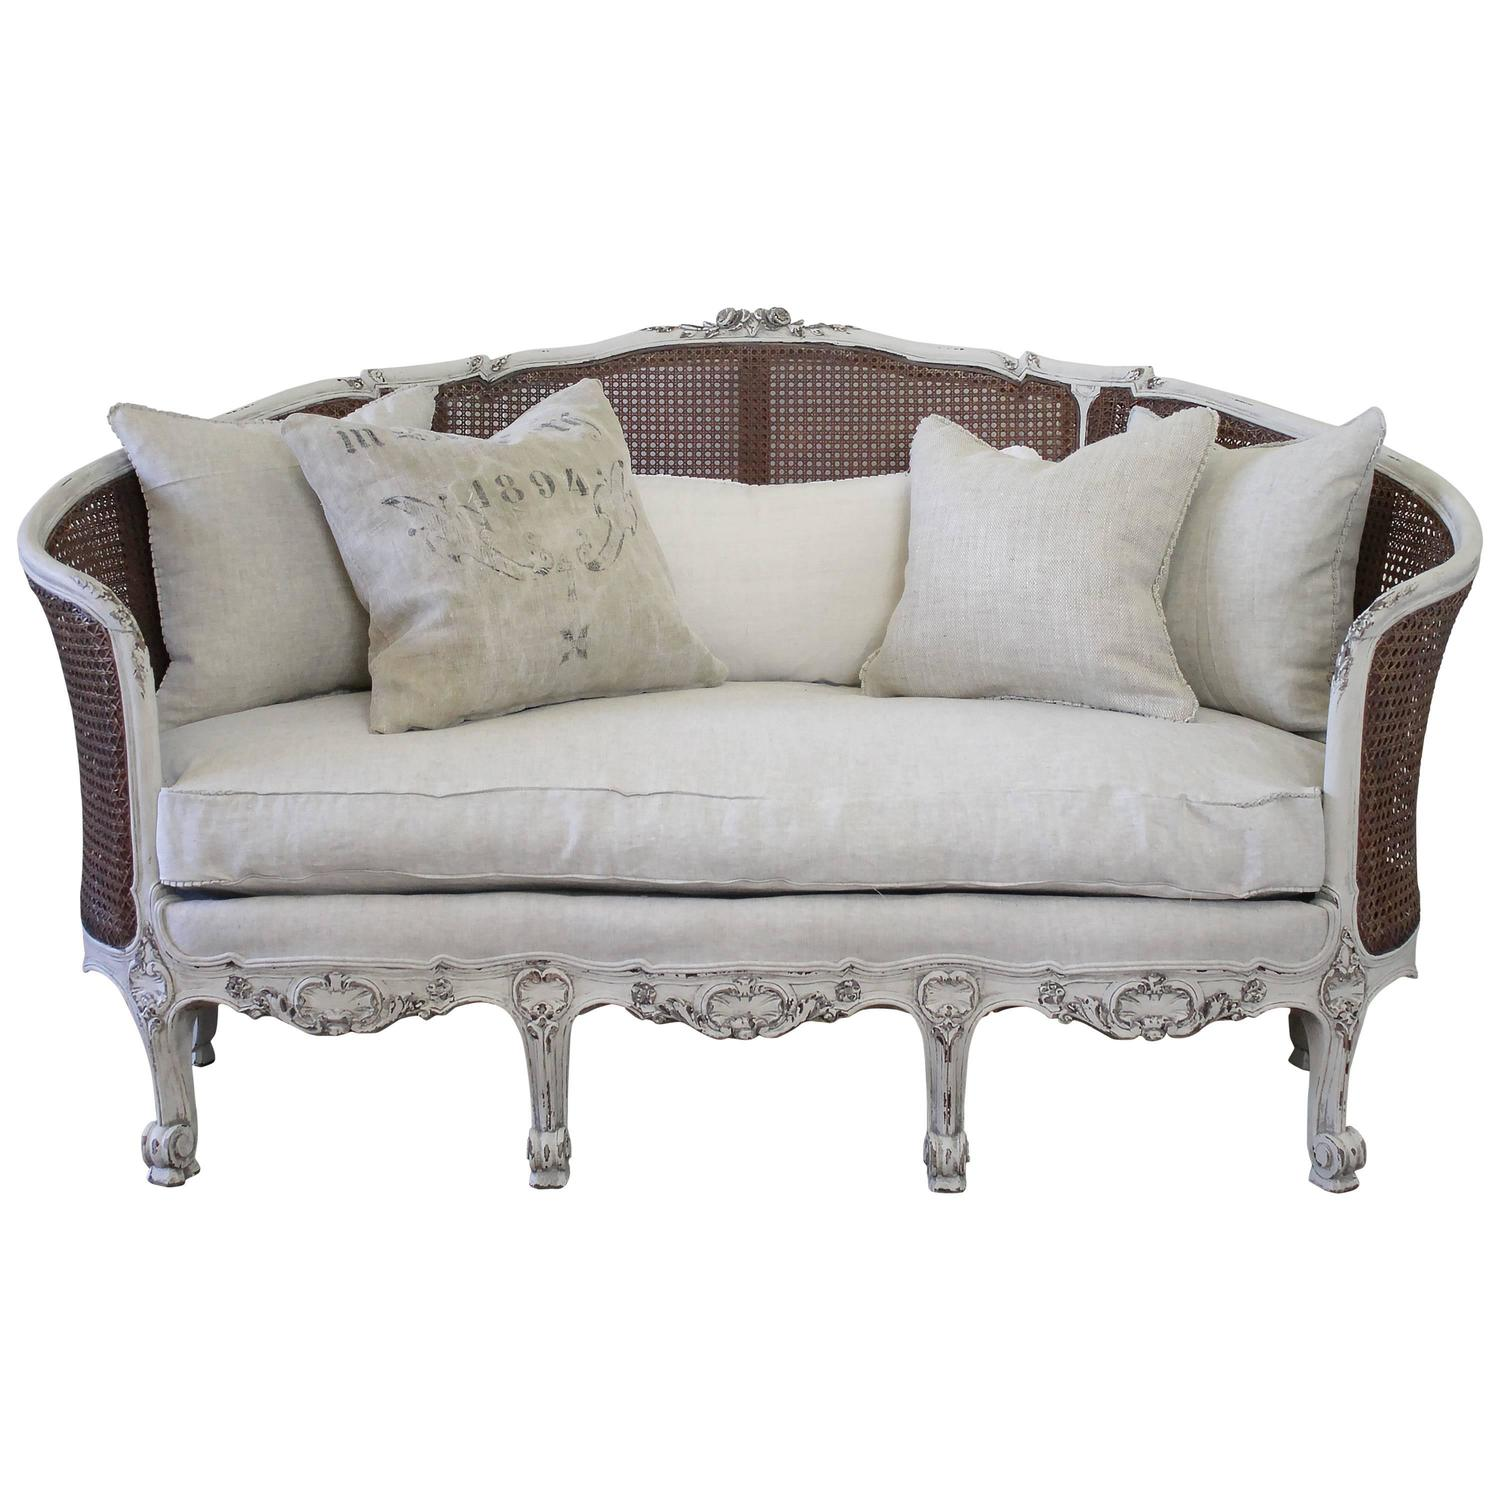 Antique Sofa Styles